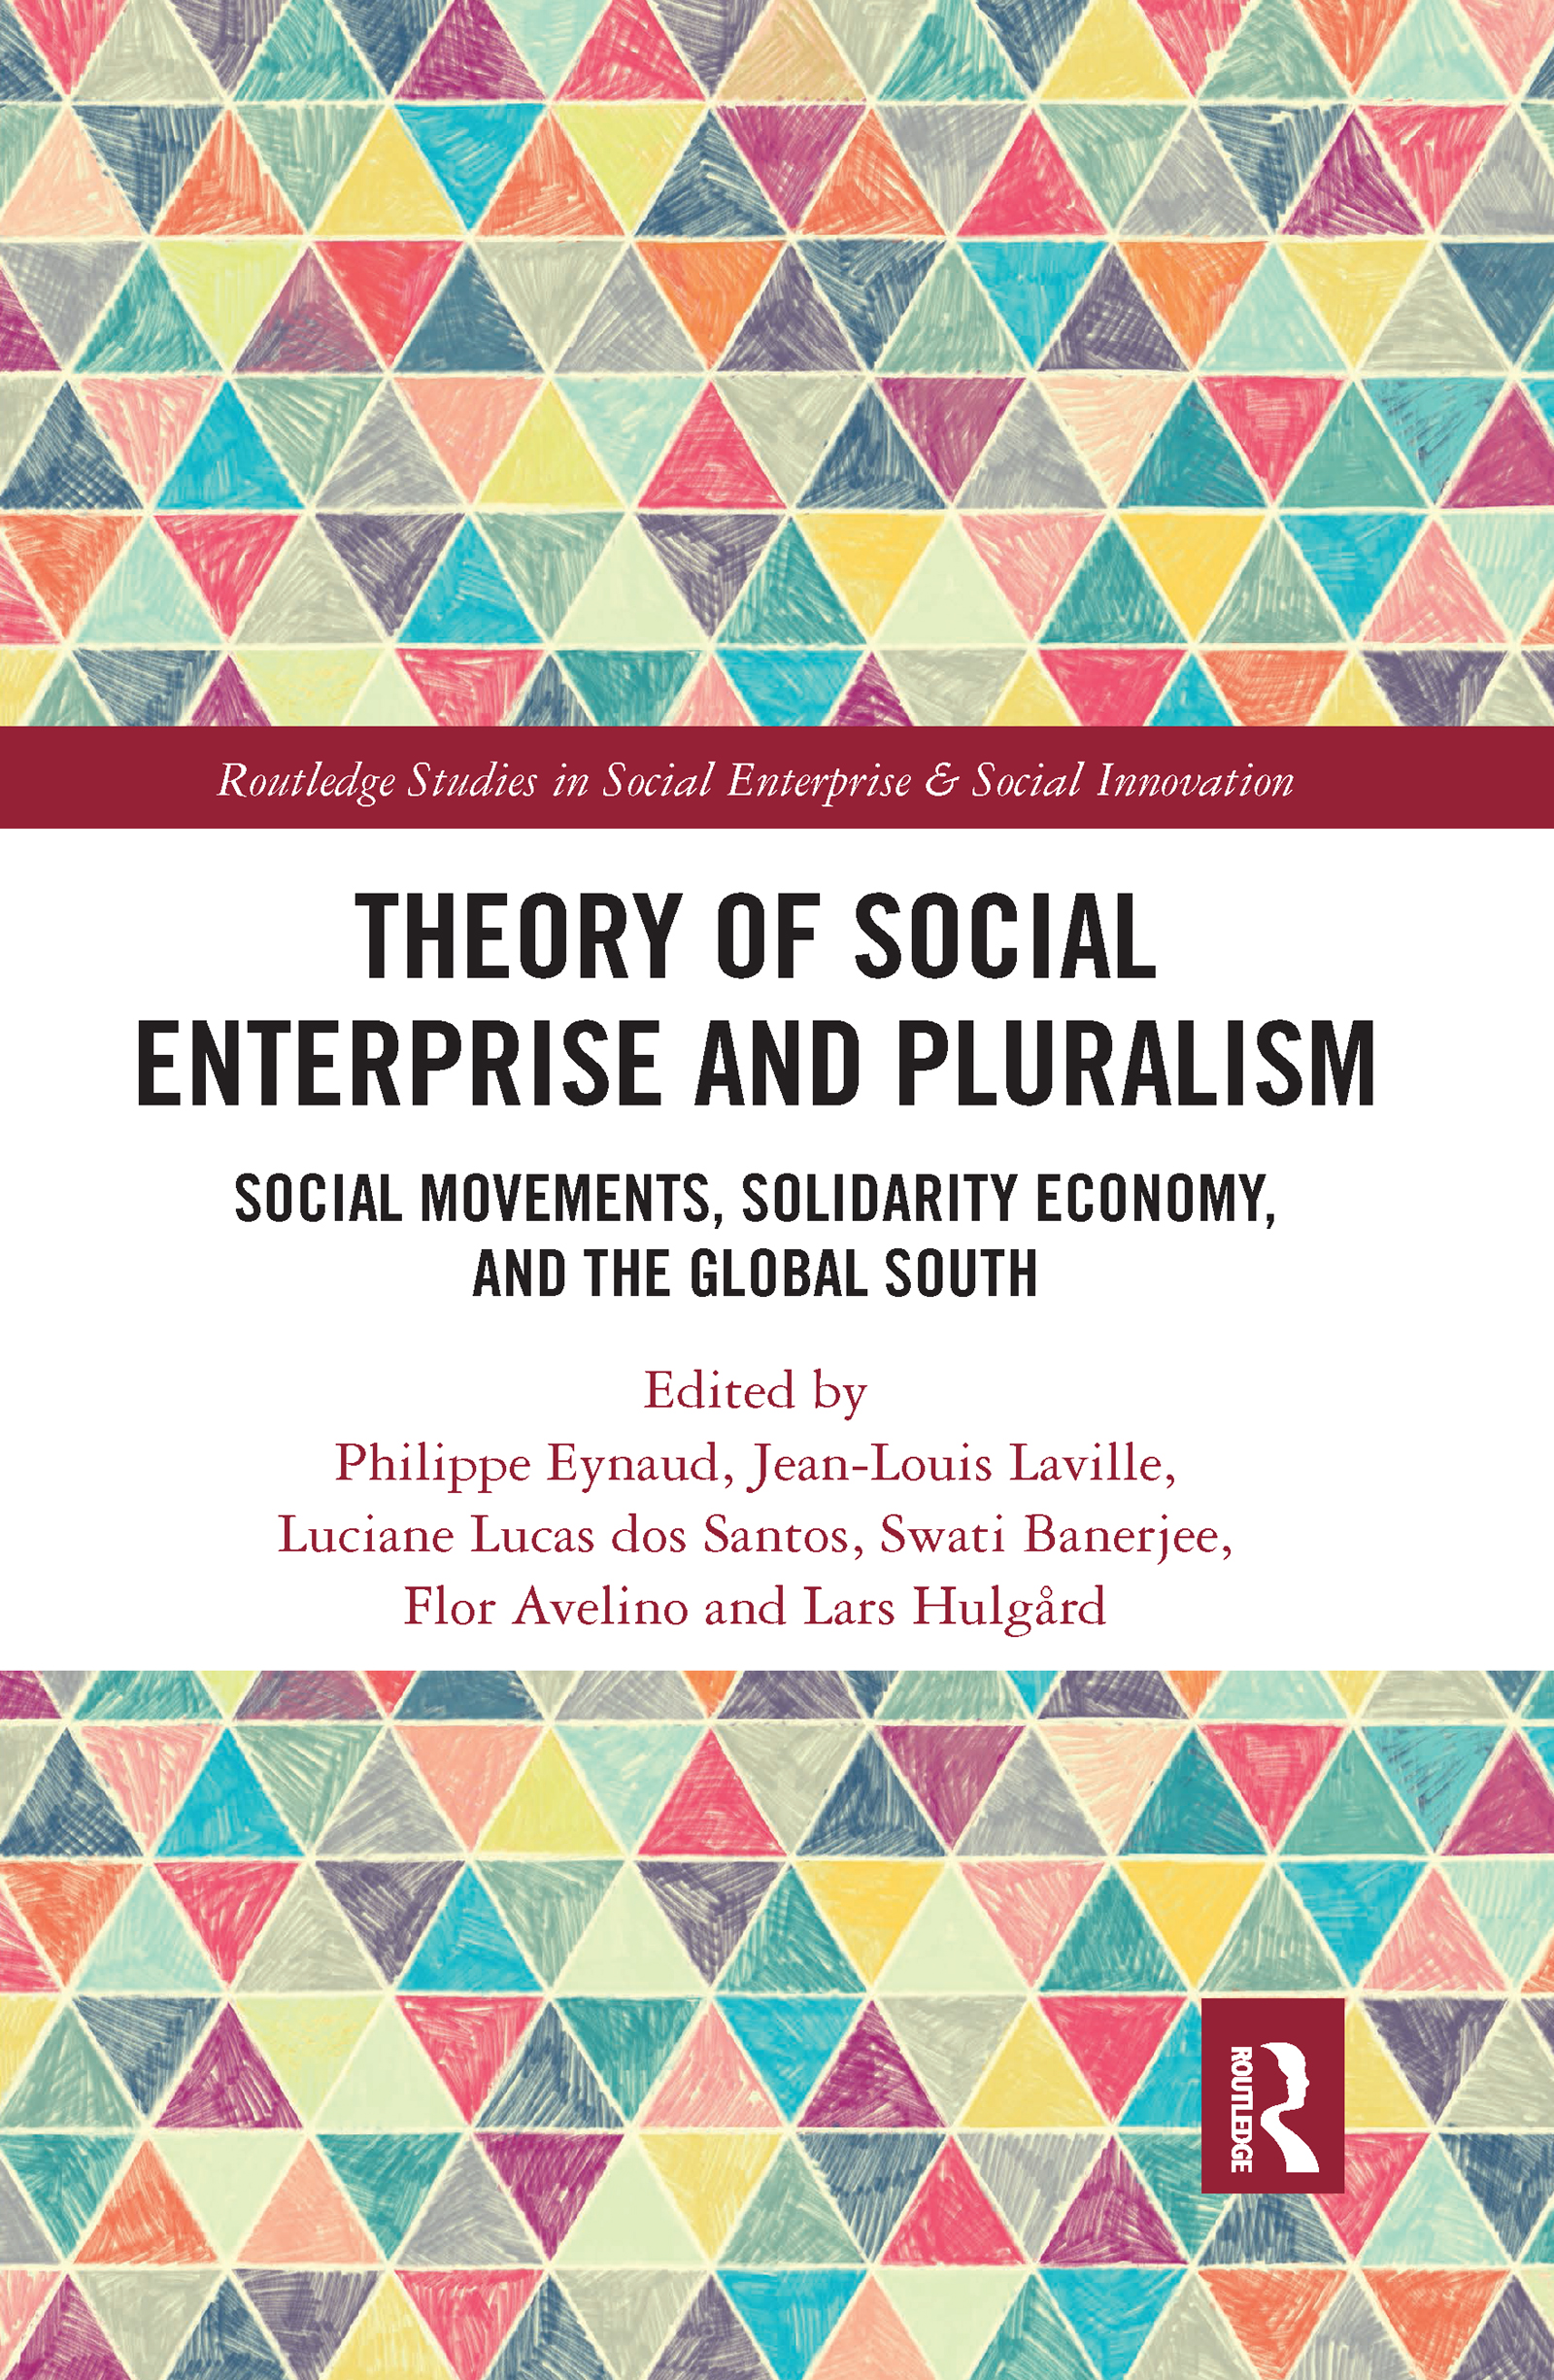 Theory of Social Enterprise and Pluralism